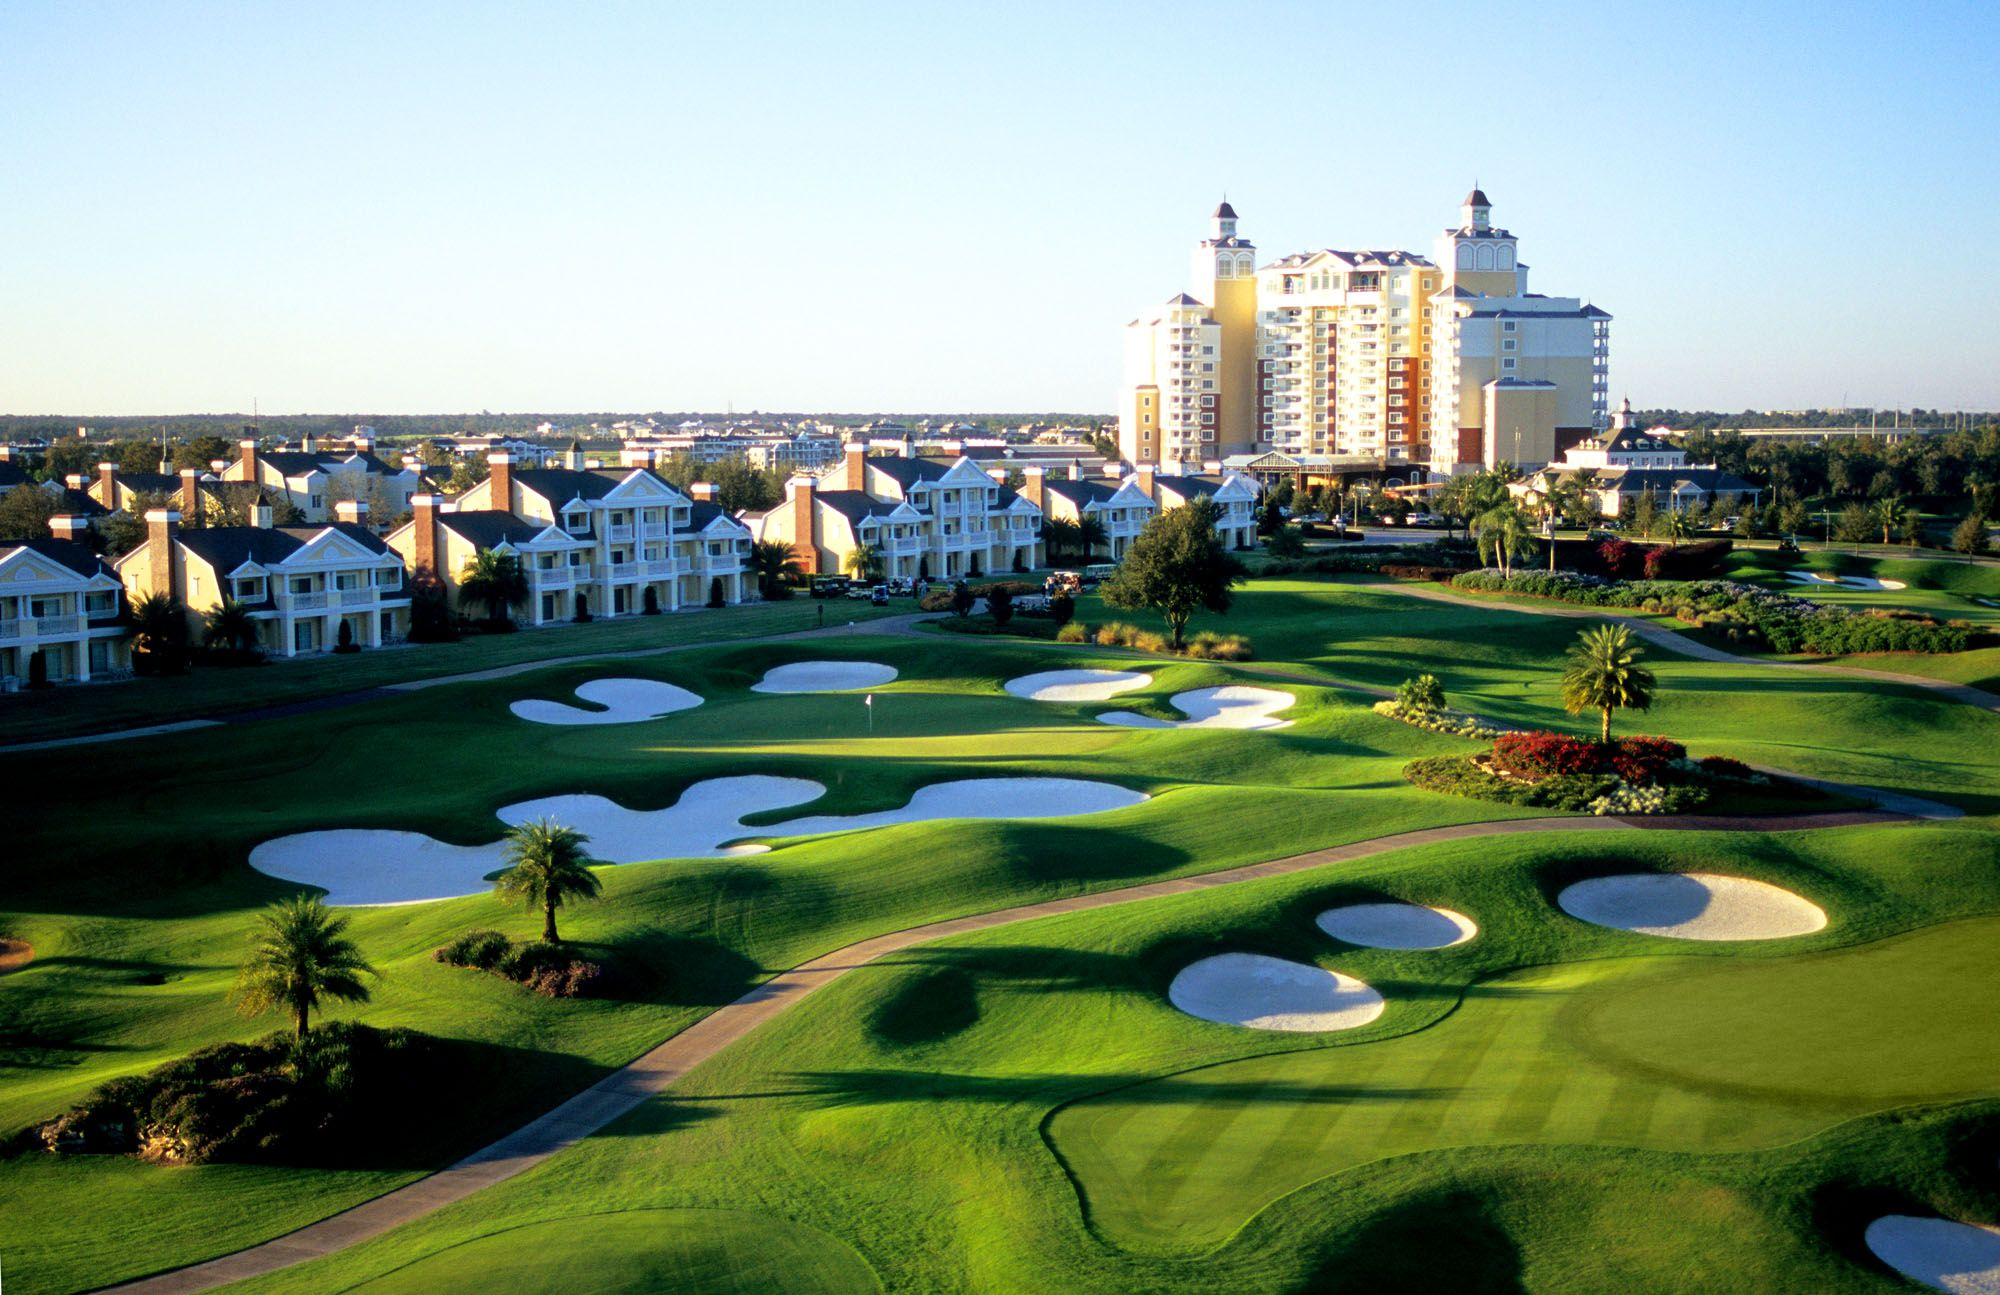 Three prodesigned golf course and highend villas? Looks